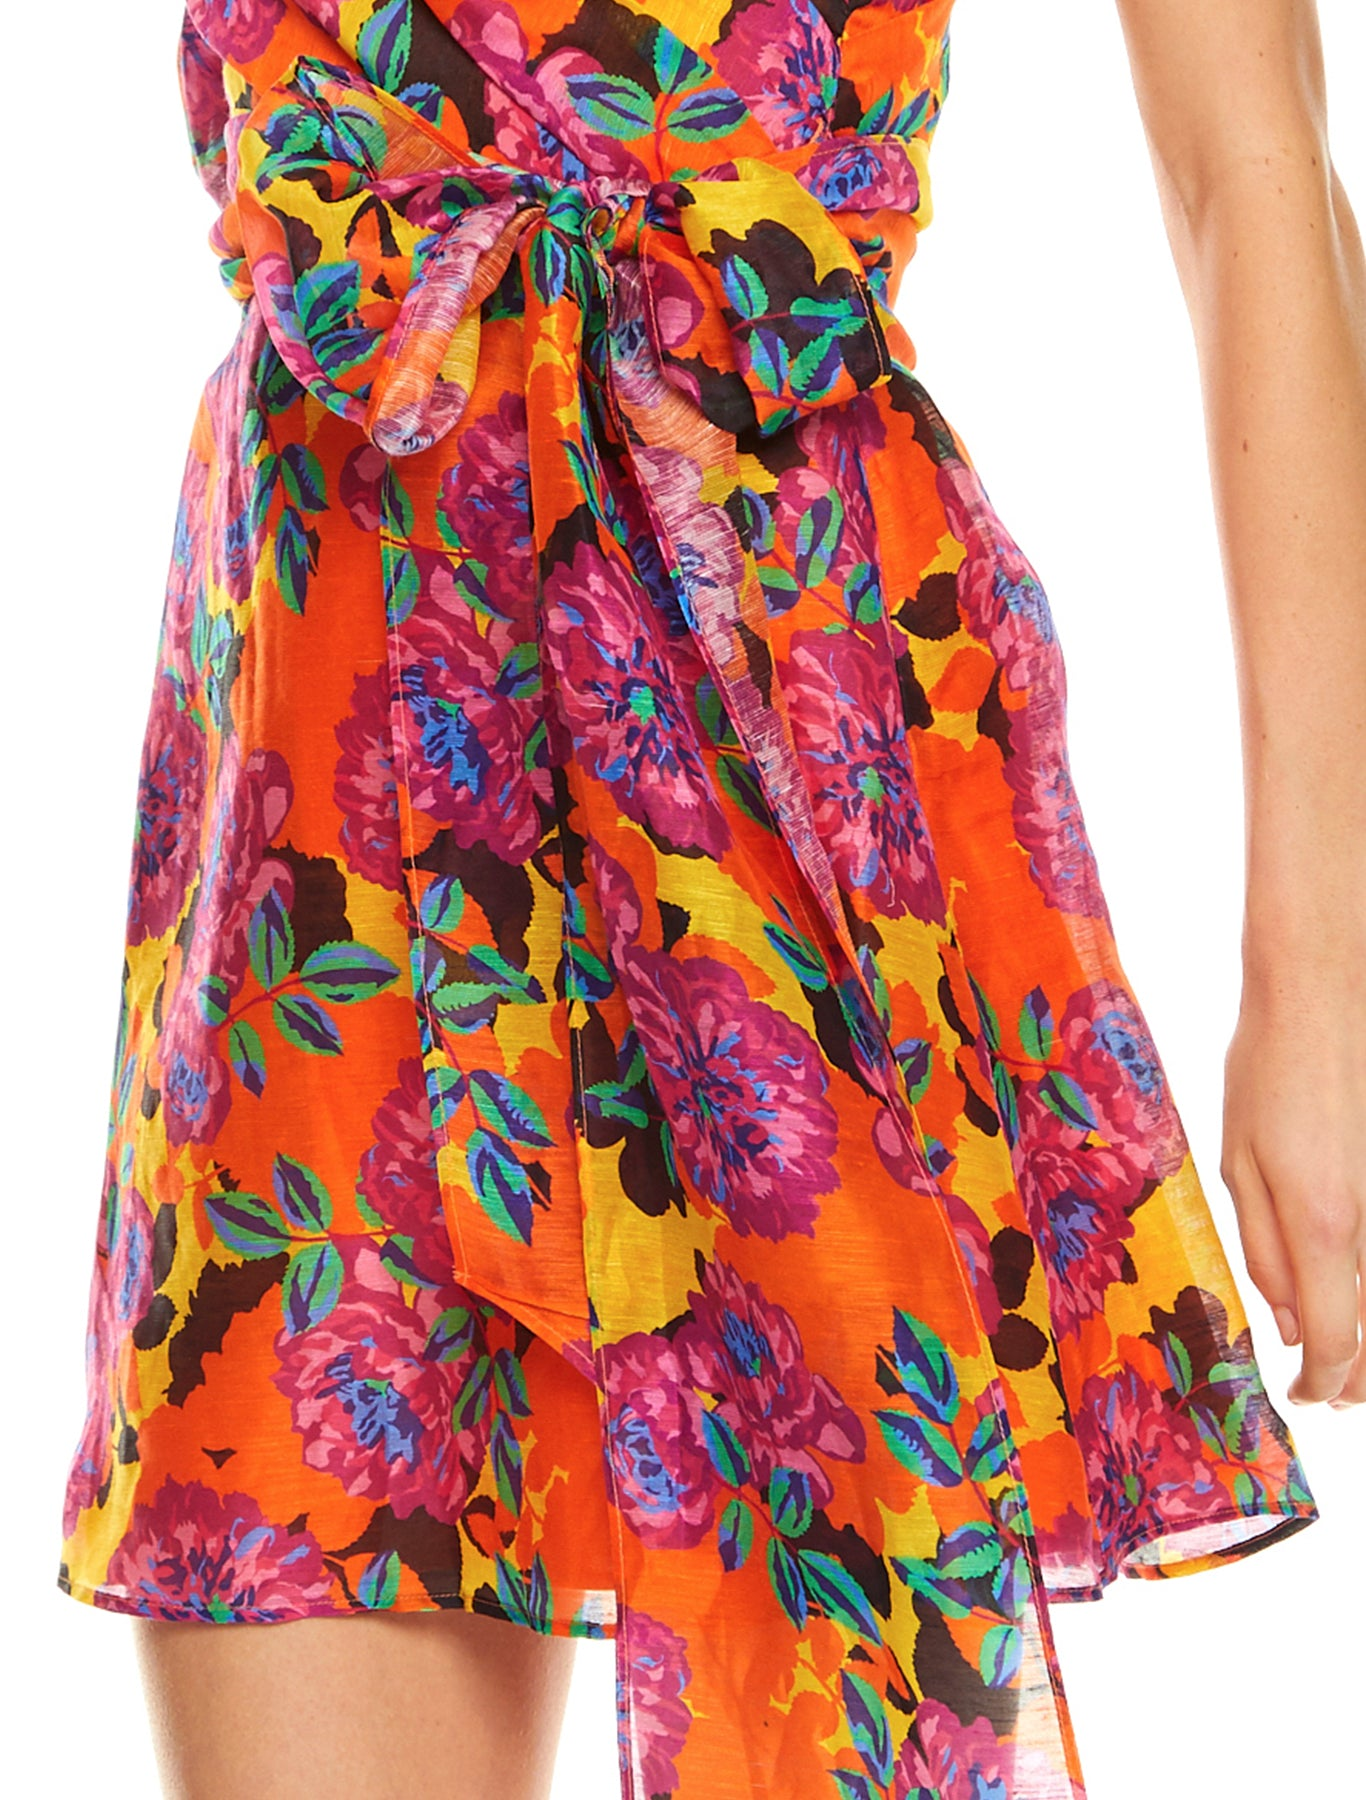 BLOSSOM MINI DRESS